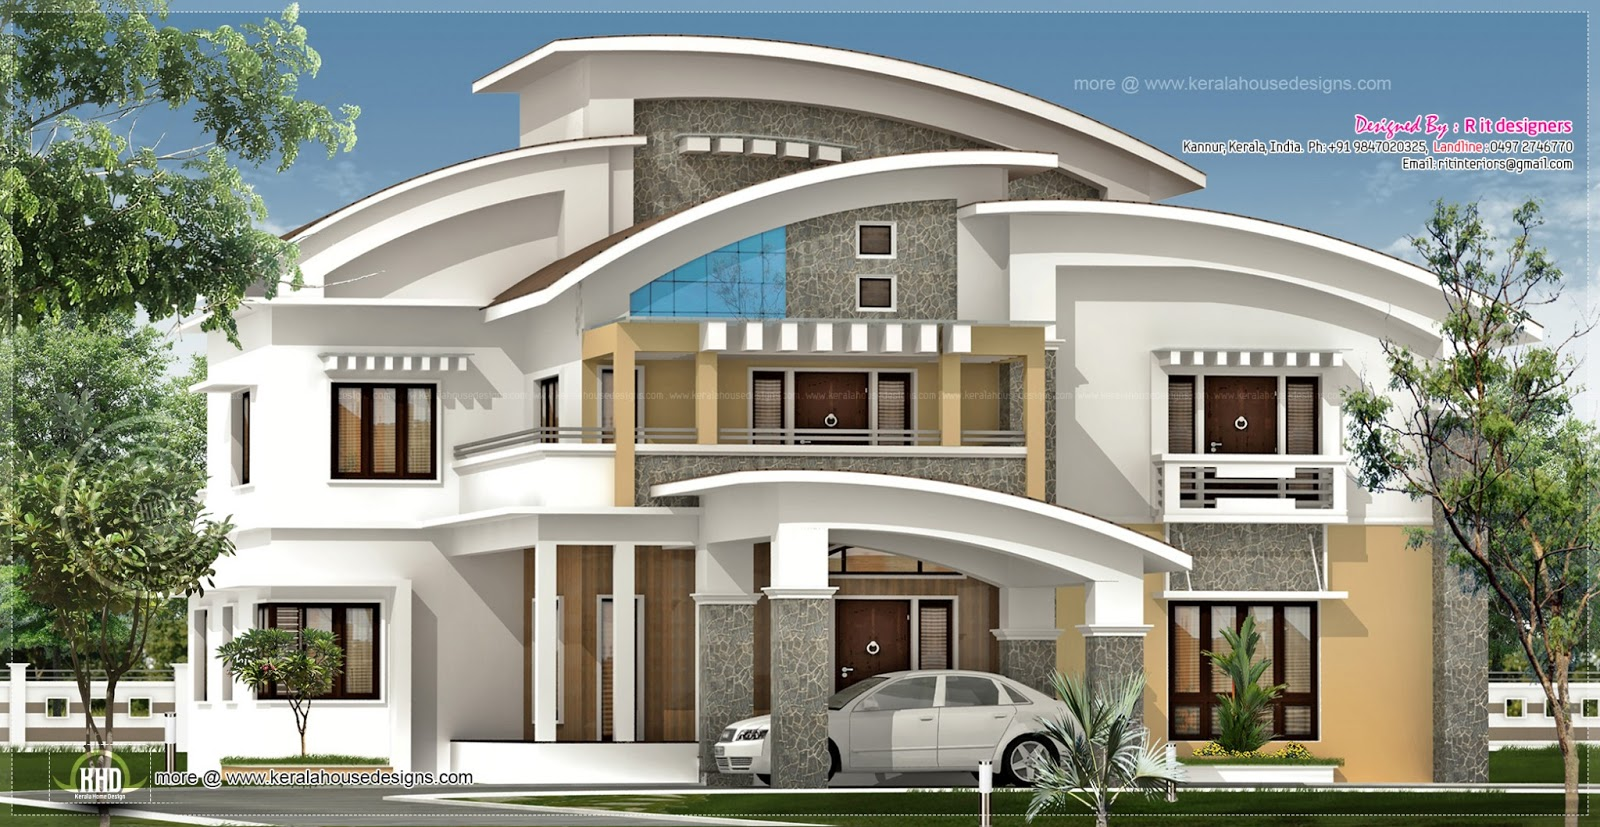 3750 square feet luxury villa exterior kerala home design and floor plans - Luxury home designs plans ...